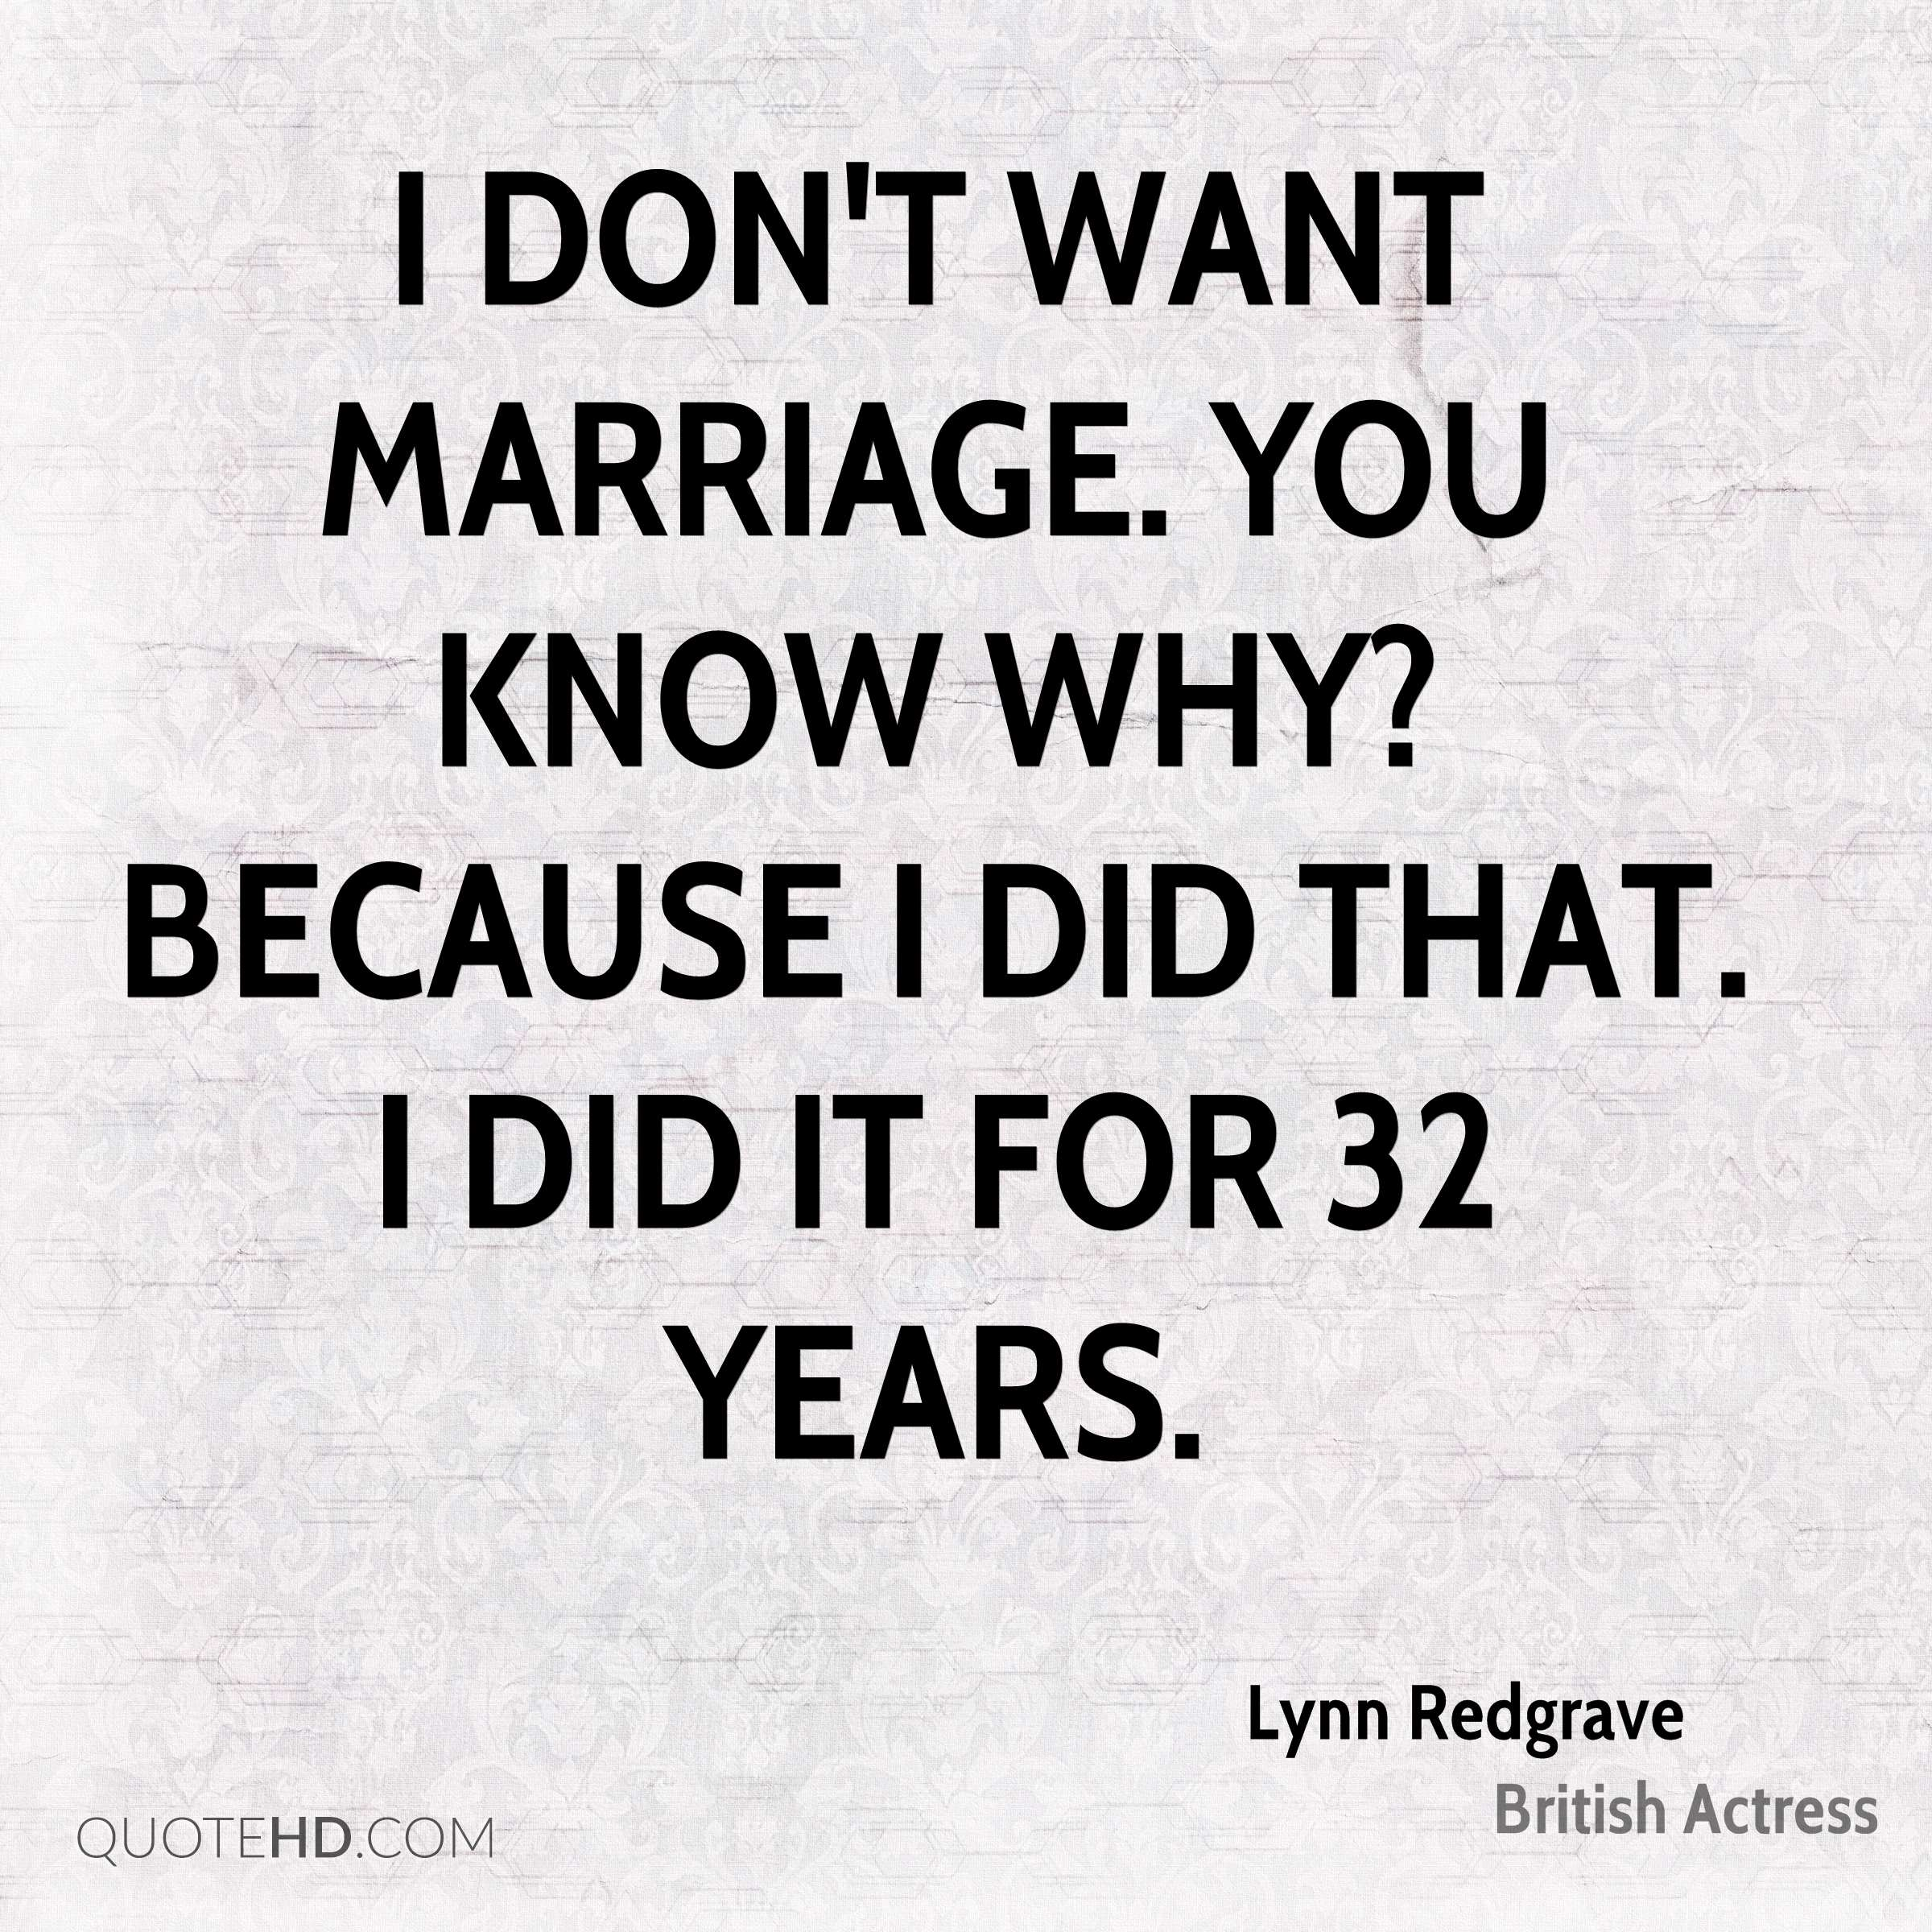 Why I do not want to marry